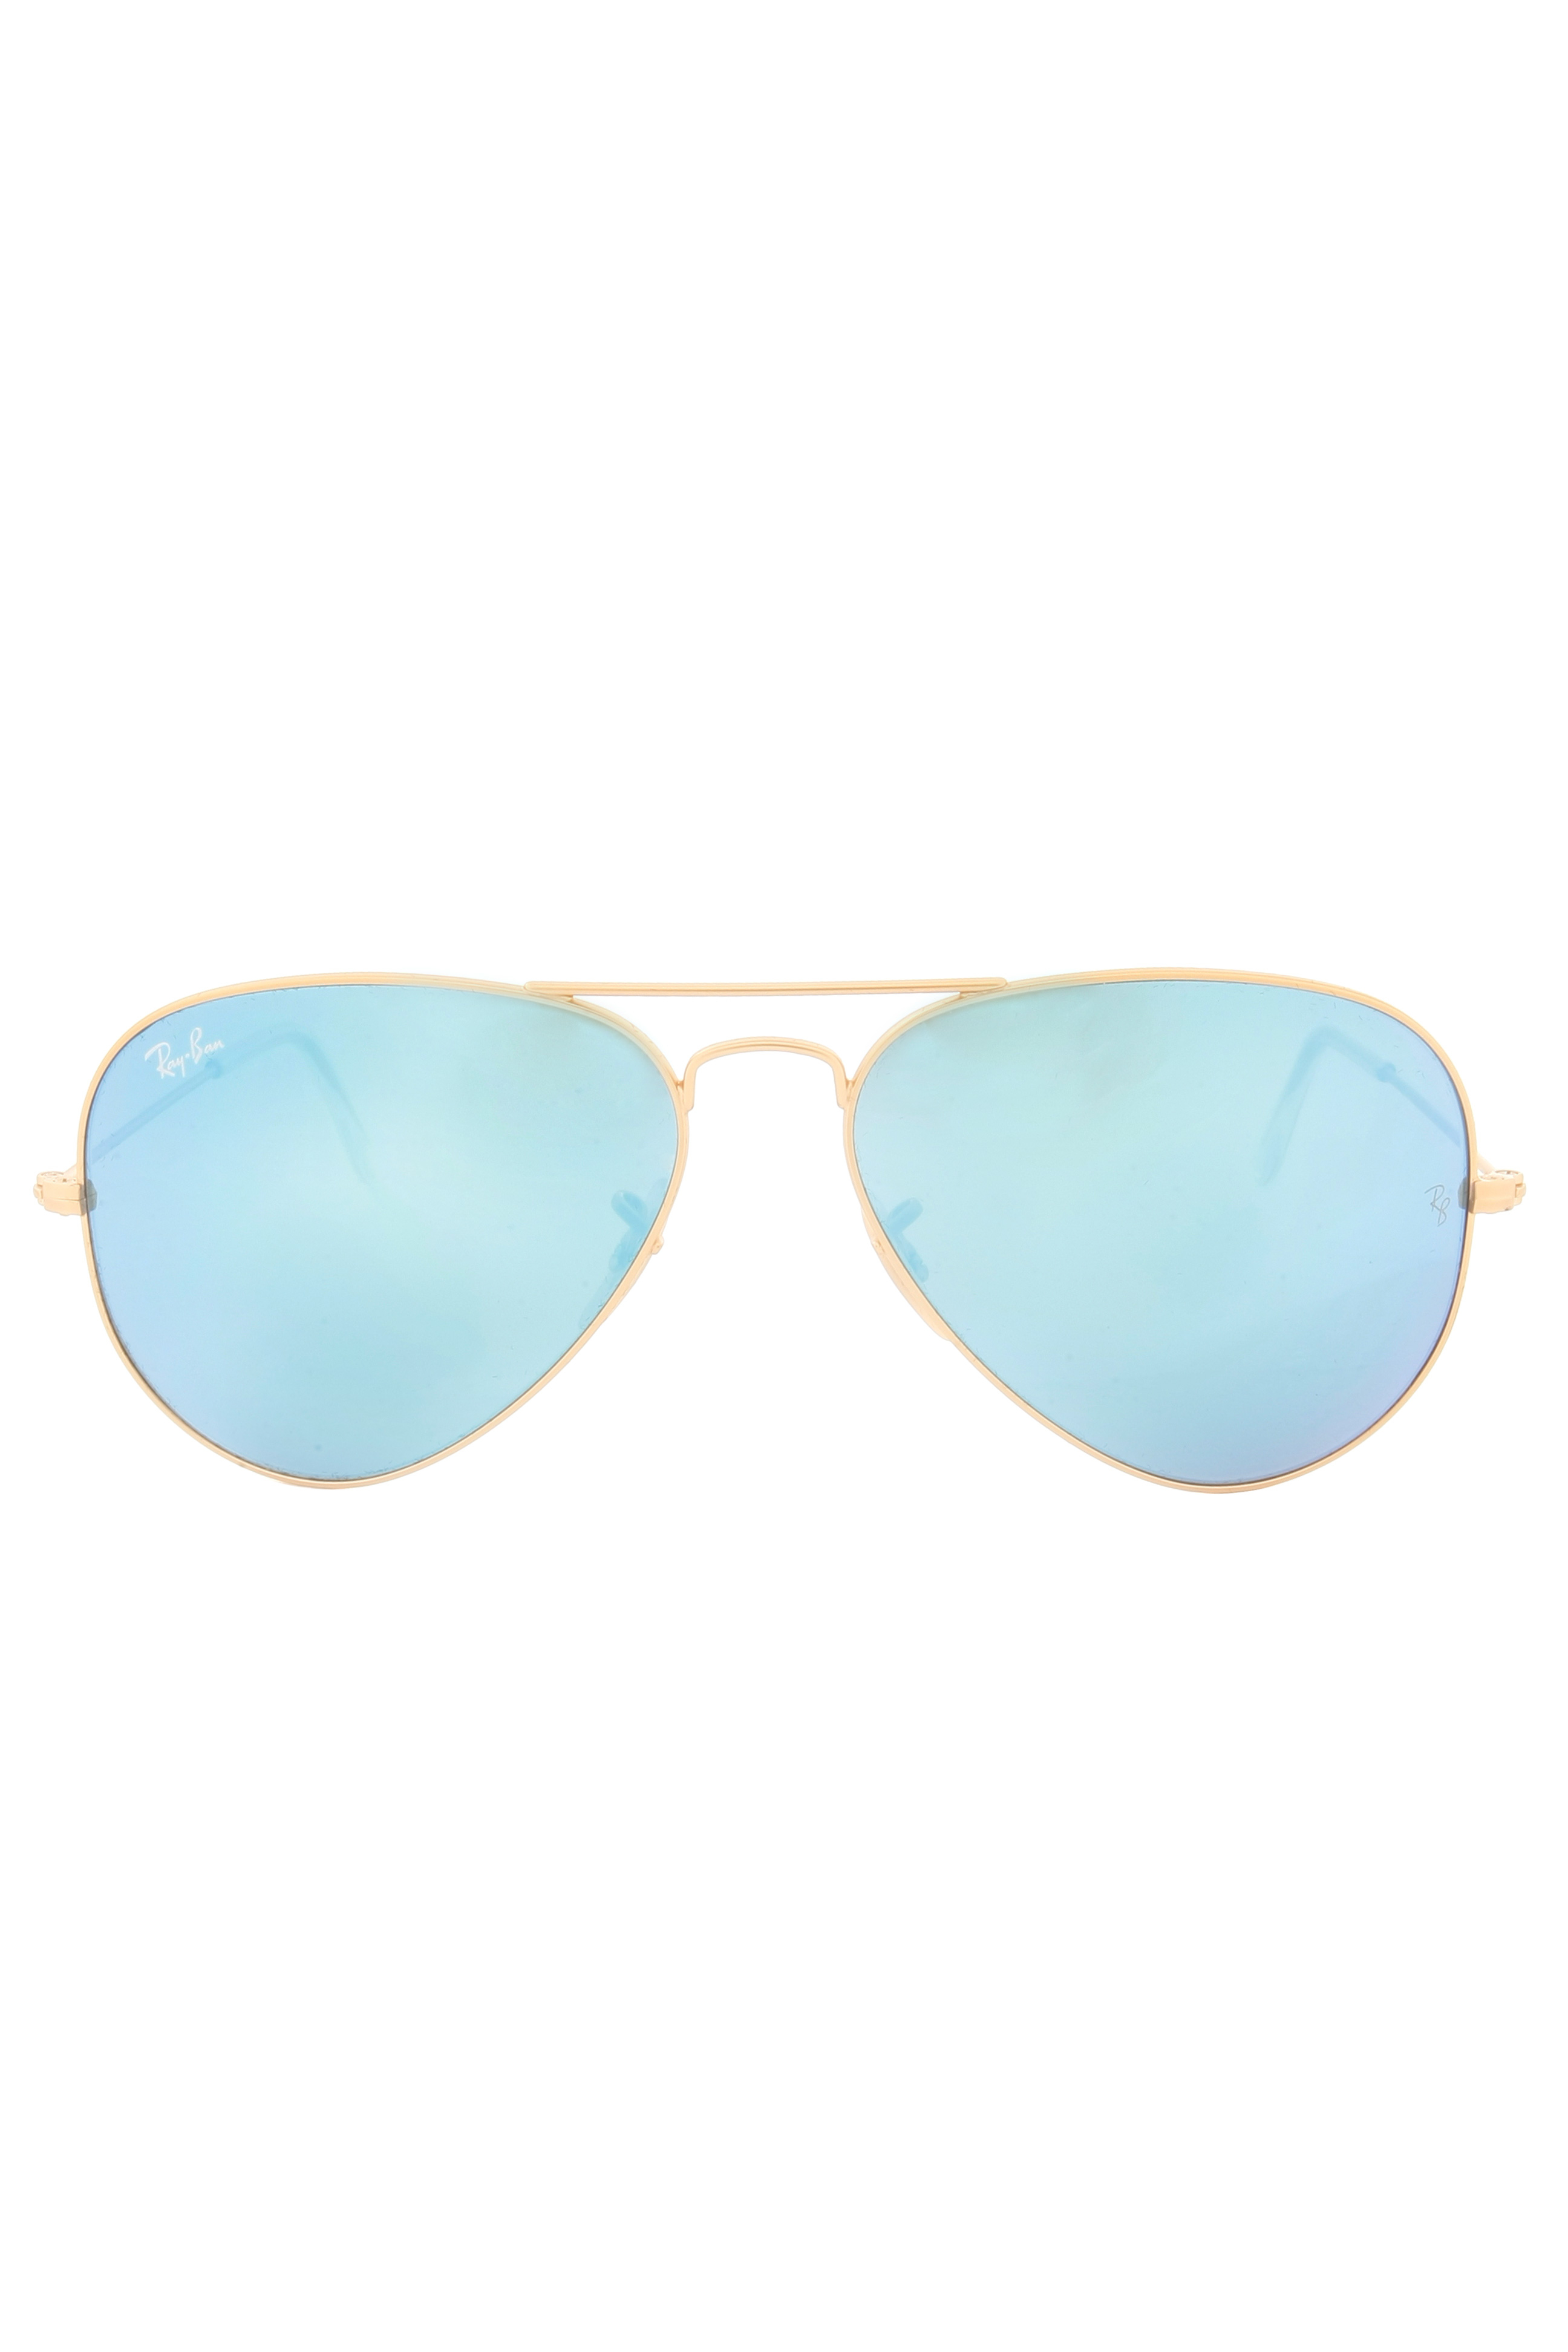 ray ban blue aviators ubu9  Gallery